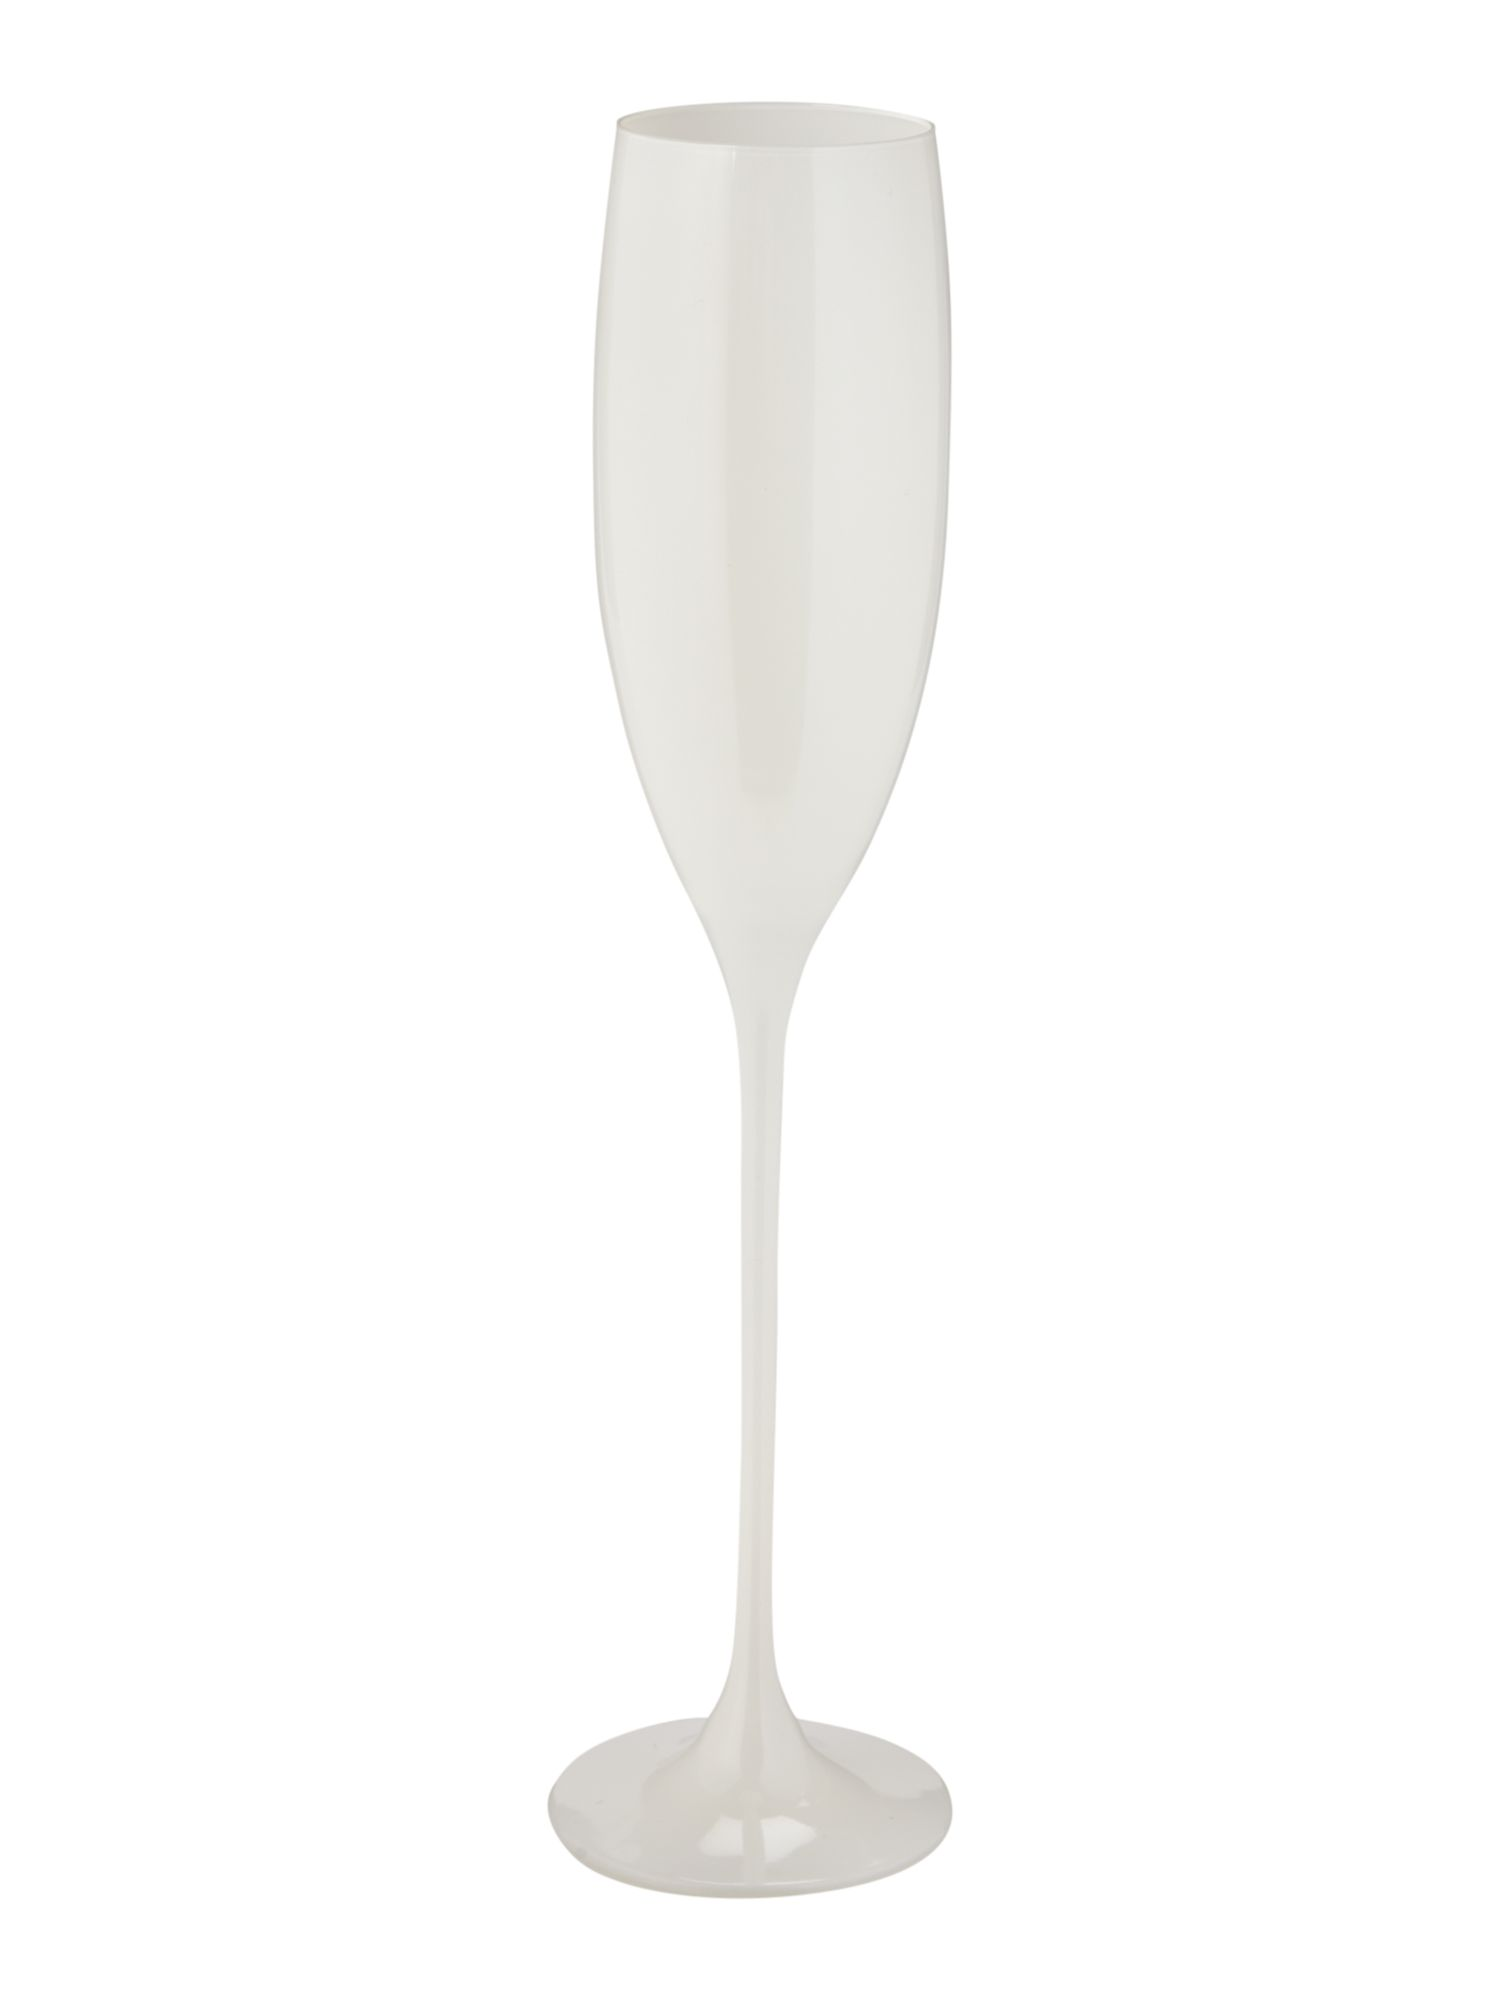 Ghost champagne glass